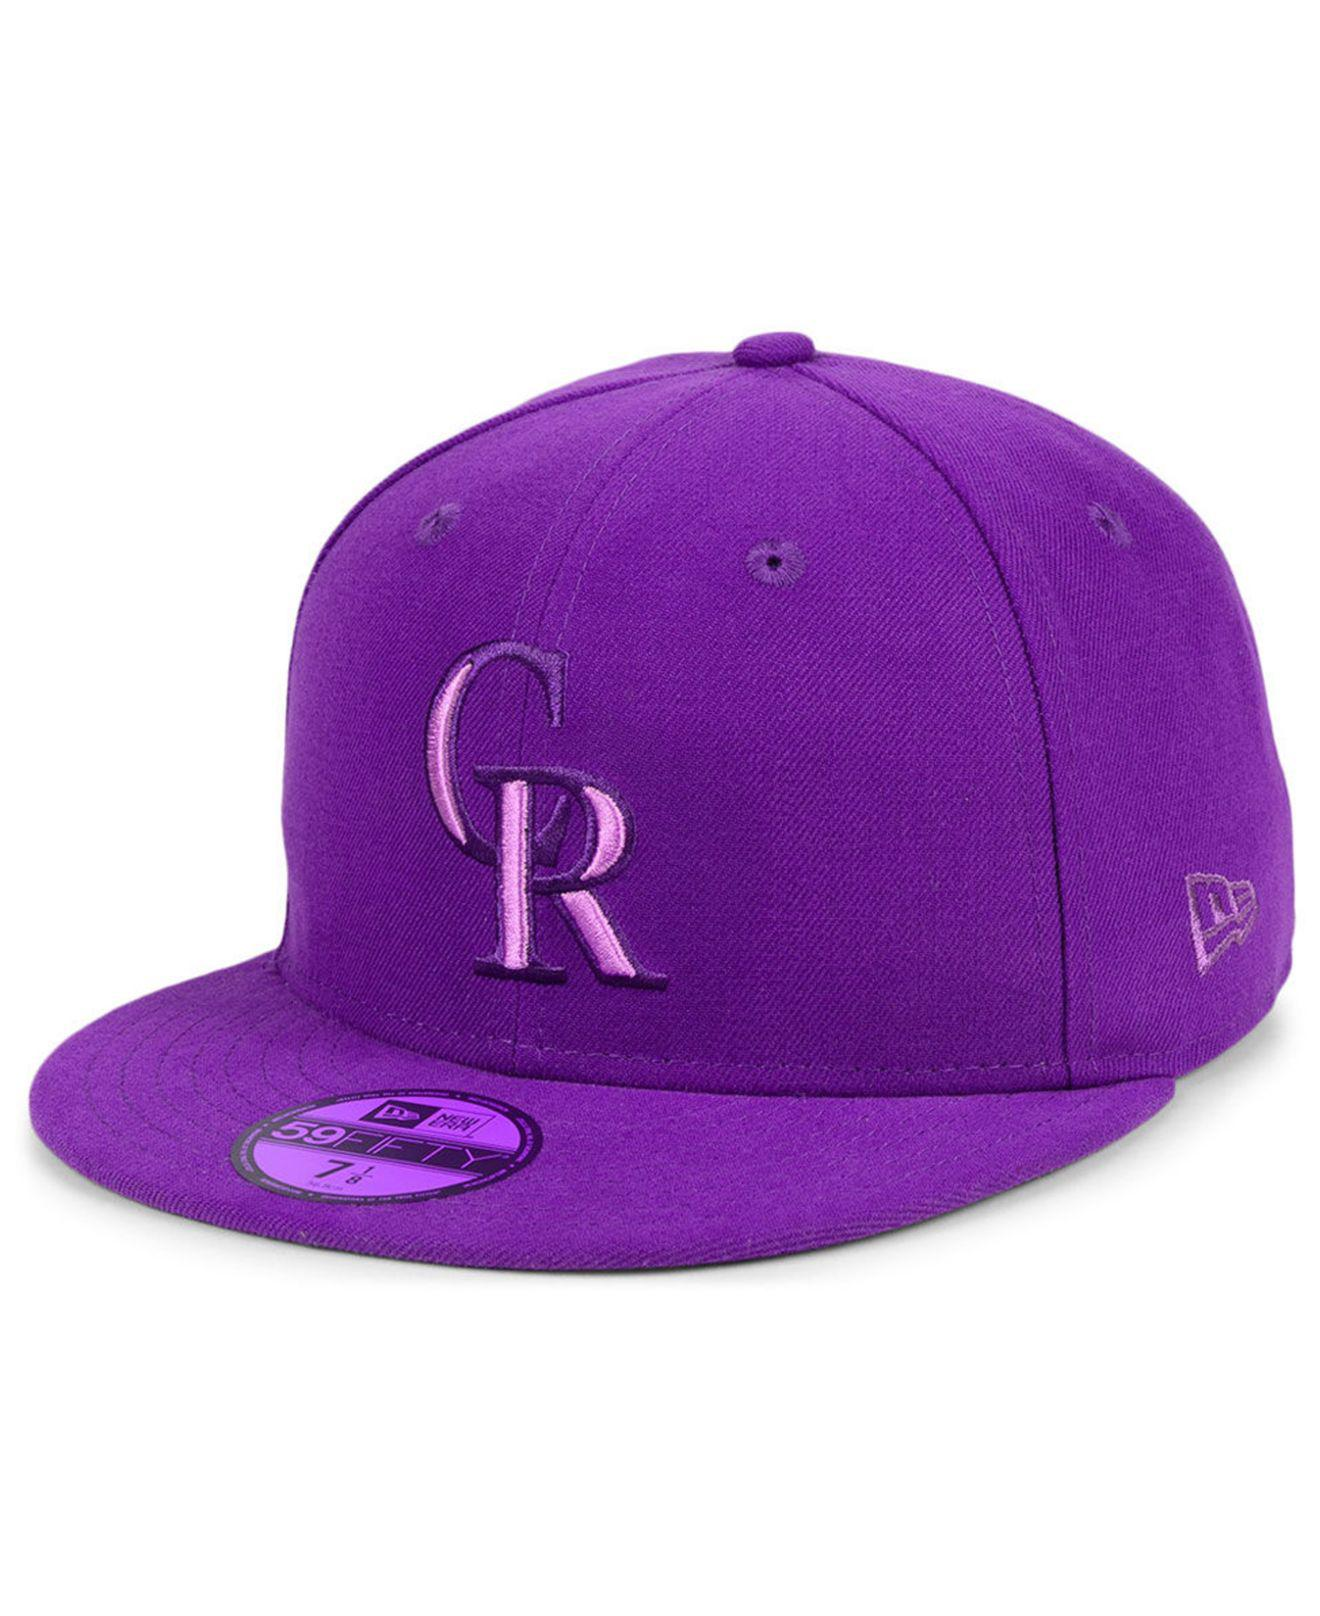 43d475ac576a8 ... low cost ktz. mens purple colorado rockies prism color pack 59fifty  fitted cap ce060 8b01e